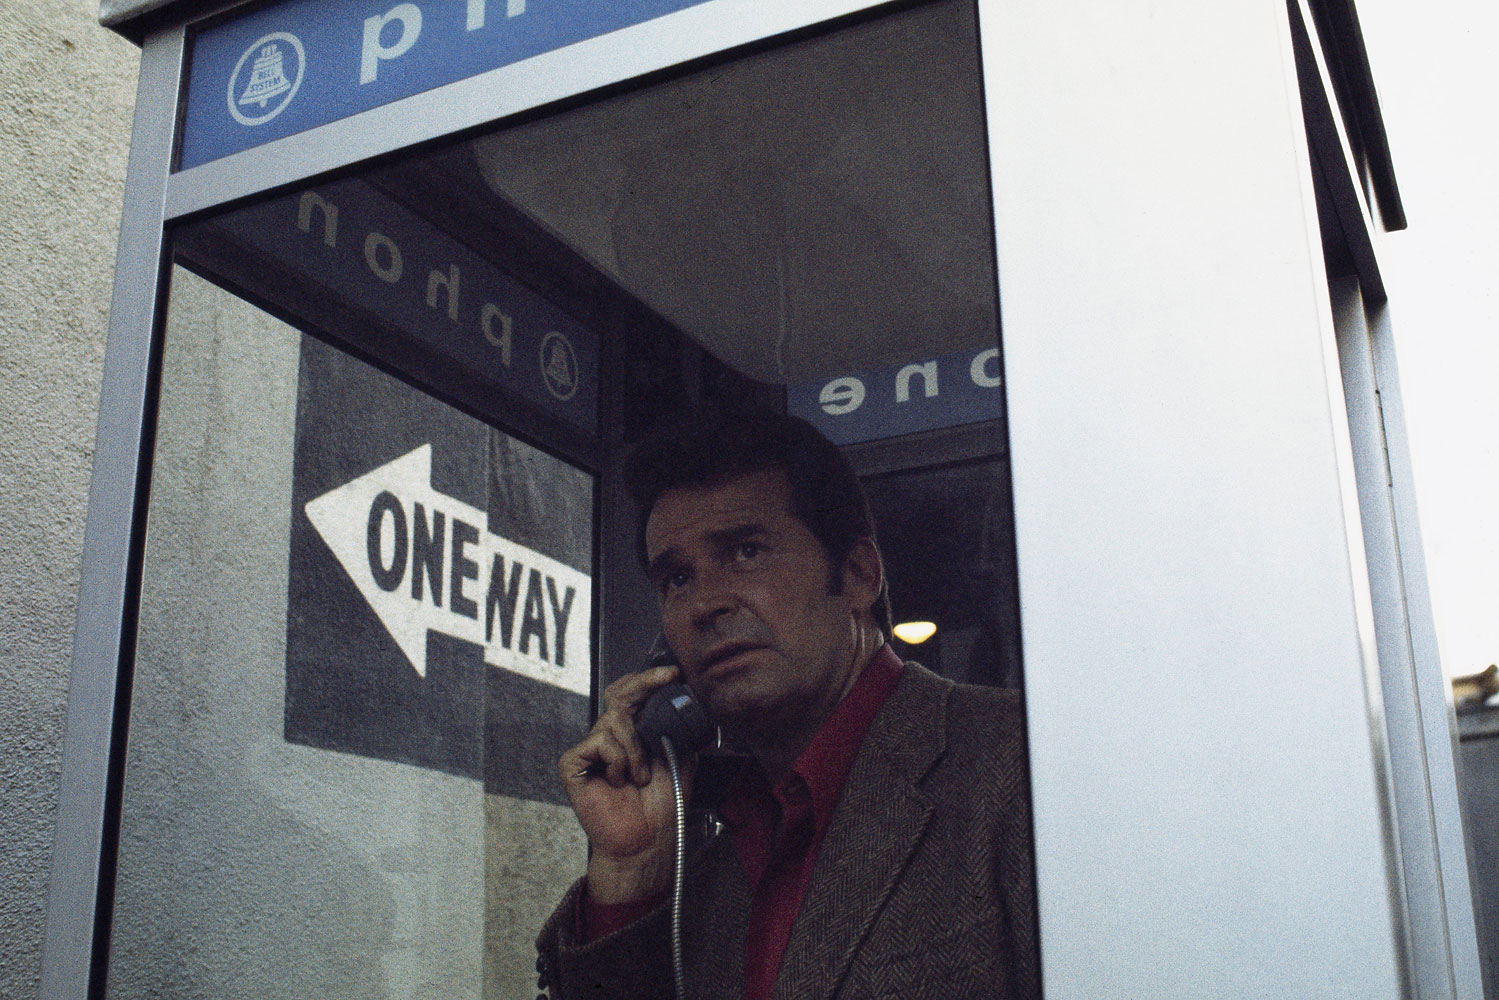 As Jim Rockford in the series The Rockford Files.